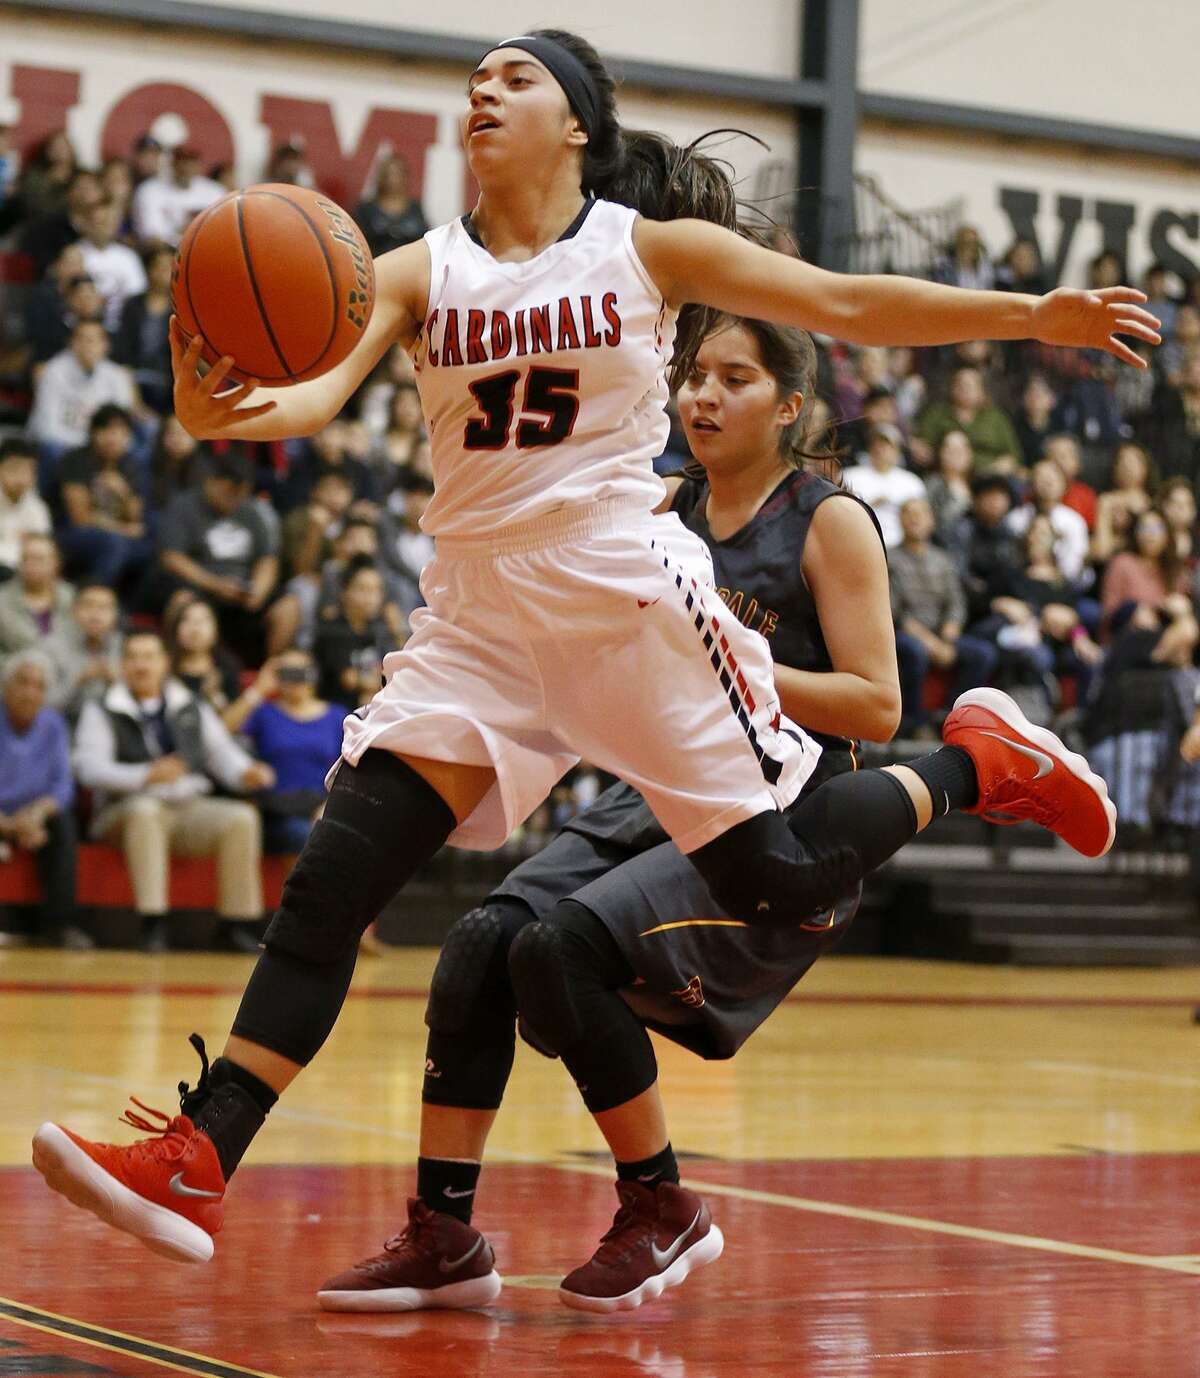 Southside's Klarissa Quintana chases after a loose ball around Harlandale's Deanna Chavarria during first half action held Friday Jan. 5, 2018 at Southside High School.